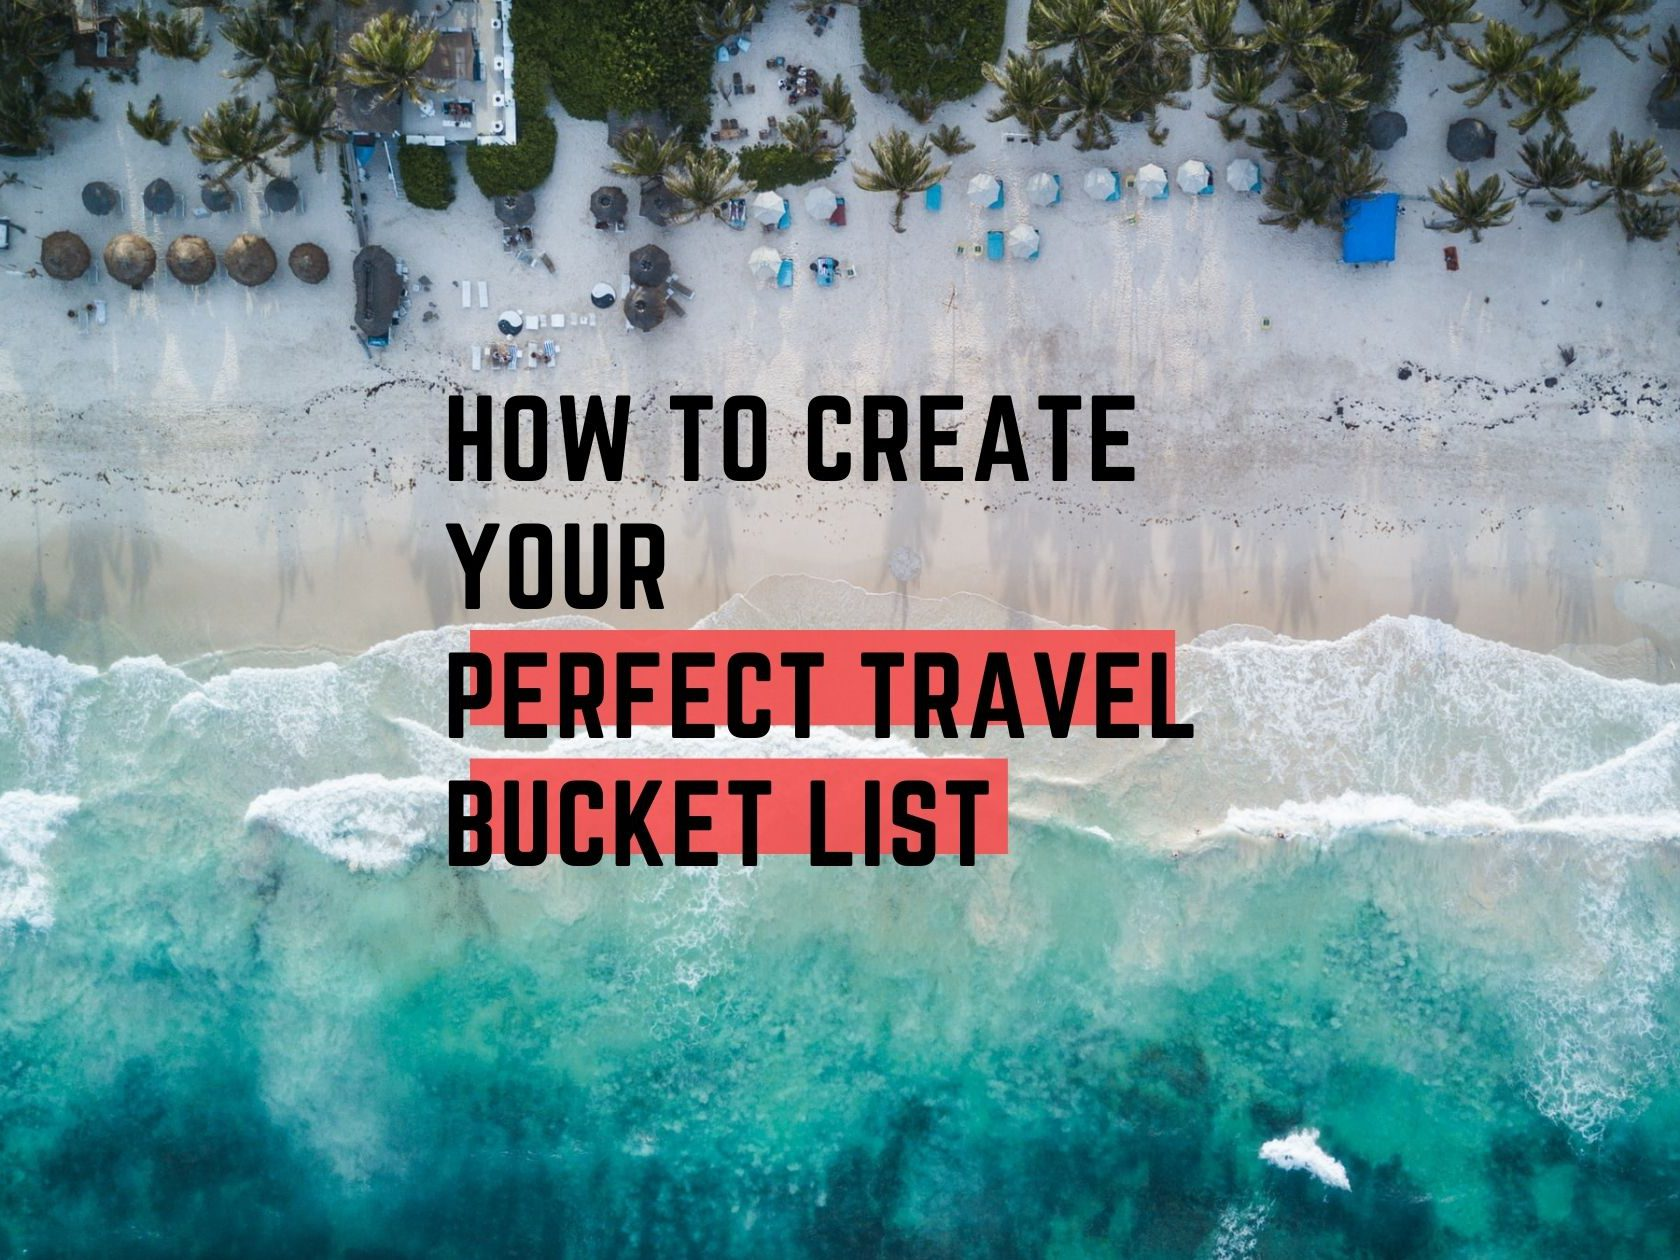 Find Out How to Create Your Perfect Travel Bucket List